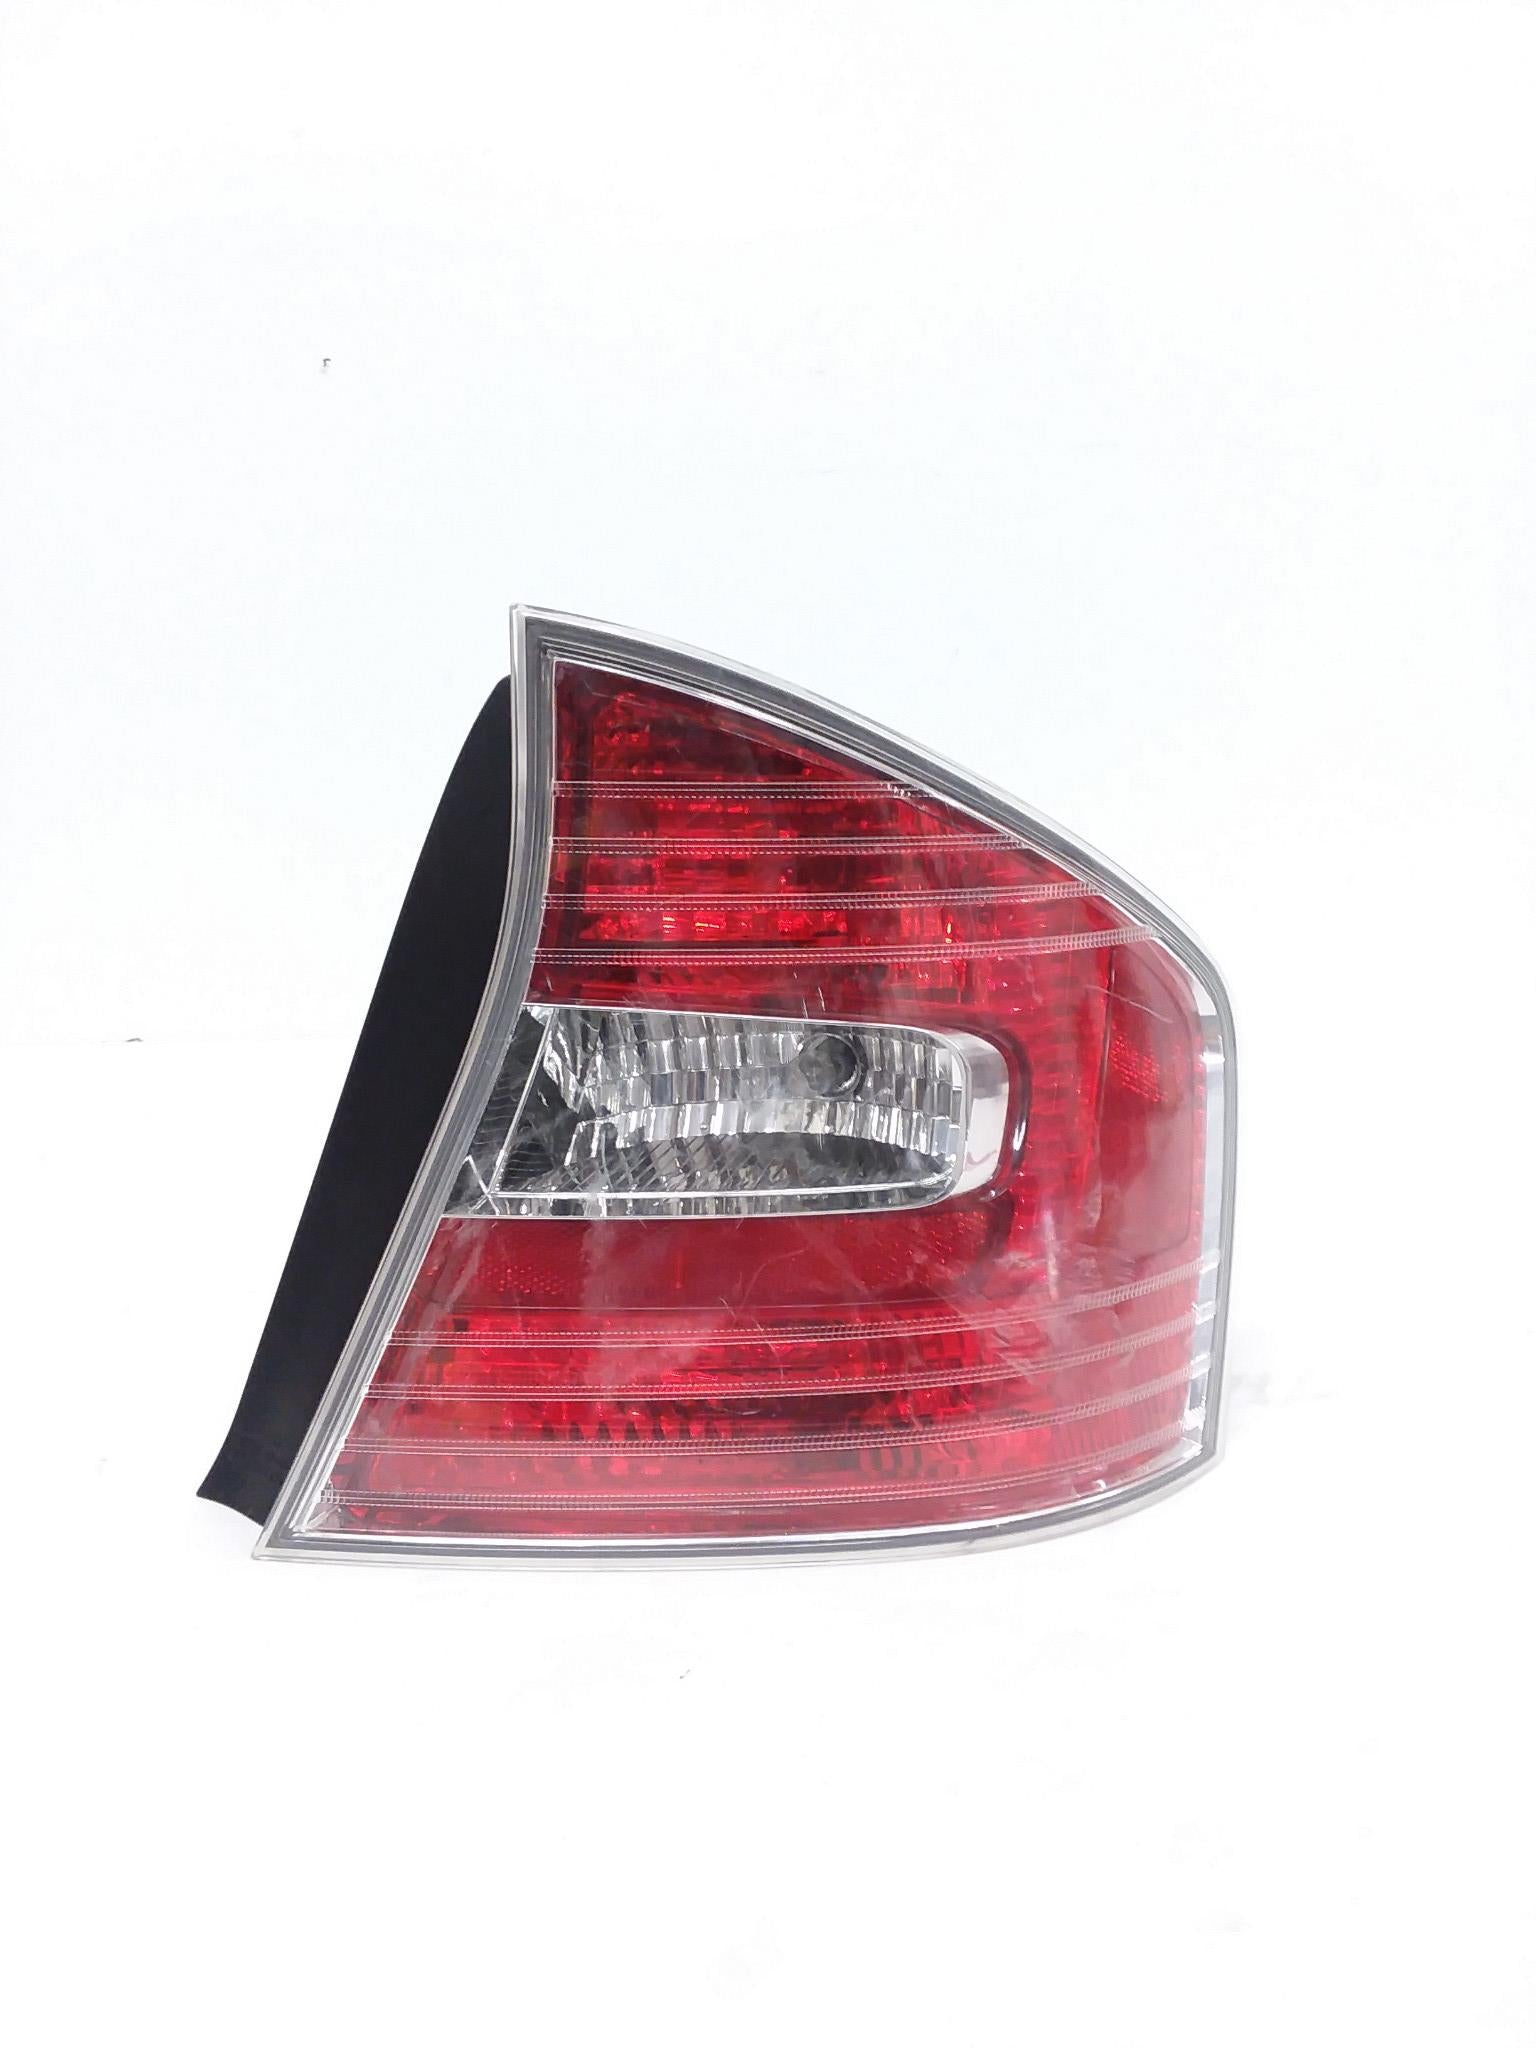 2005 2006 2007 Subaru Legacy Passenger Right Side Tail Light Rear Lamp OEM